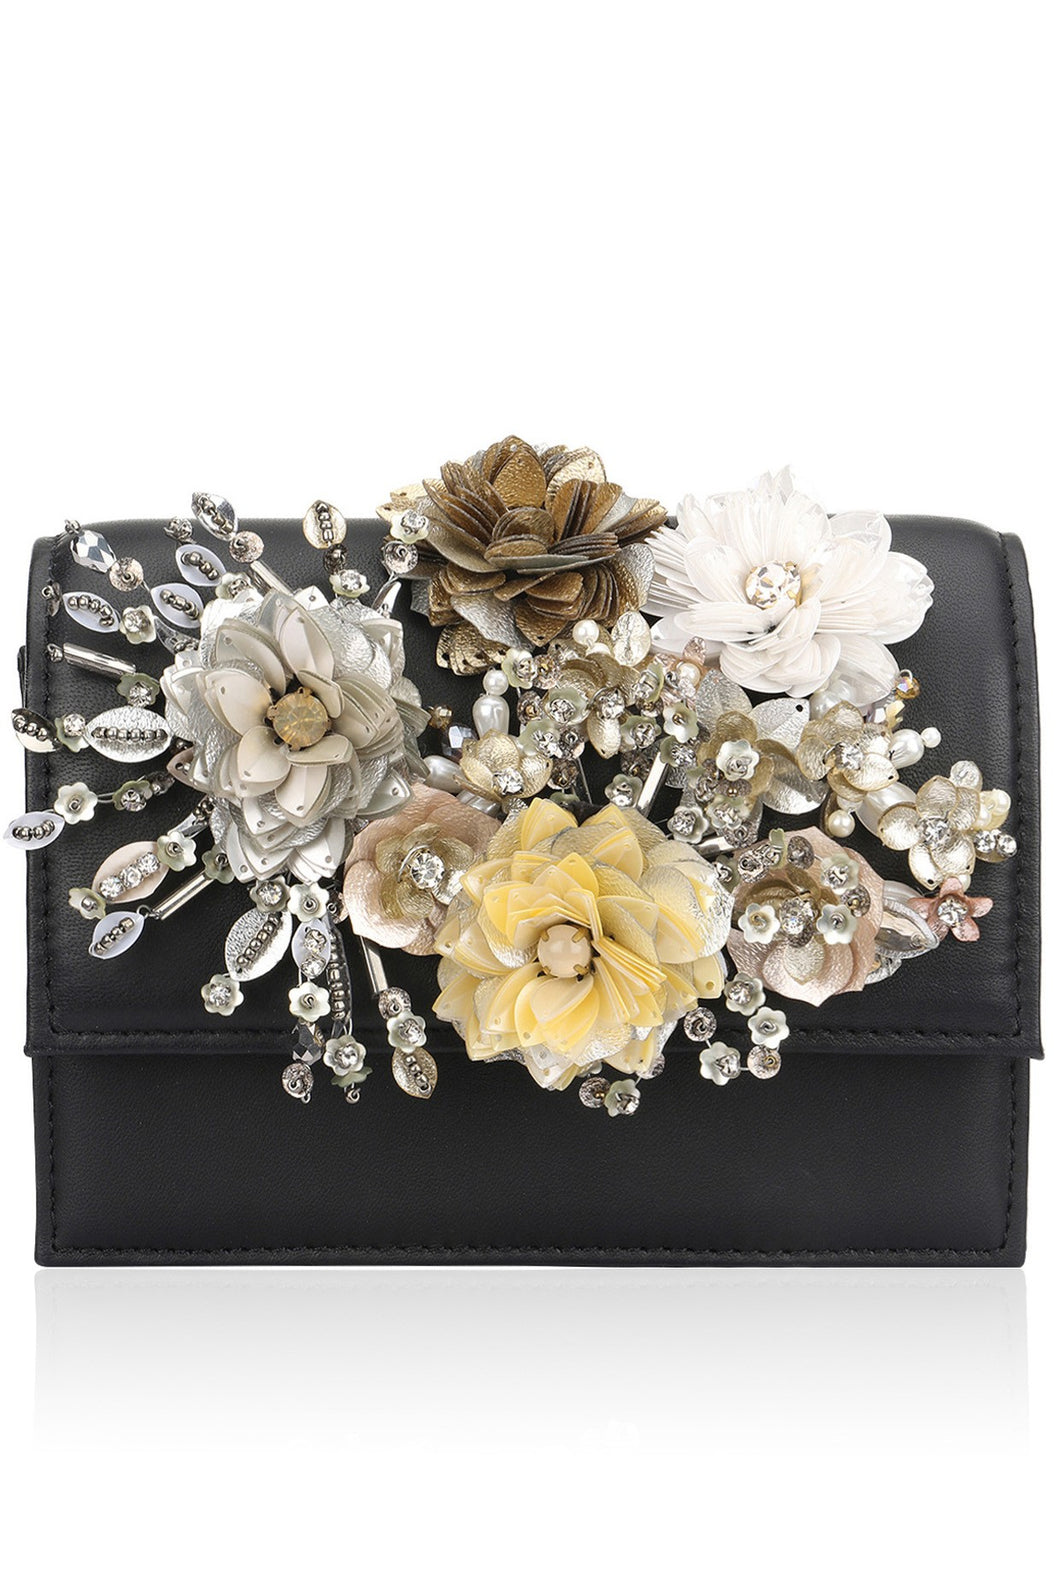 04eeb4aa77 Studio Accessories Multicolor Crystal and Sequins floral leather clutch bag